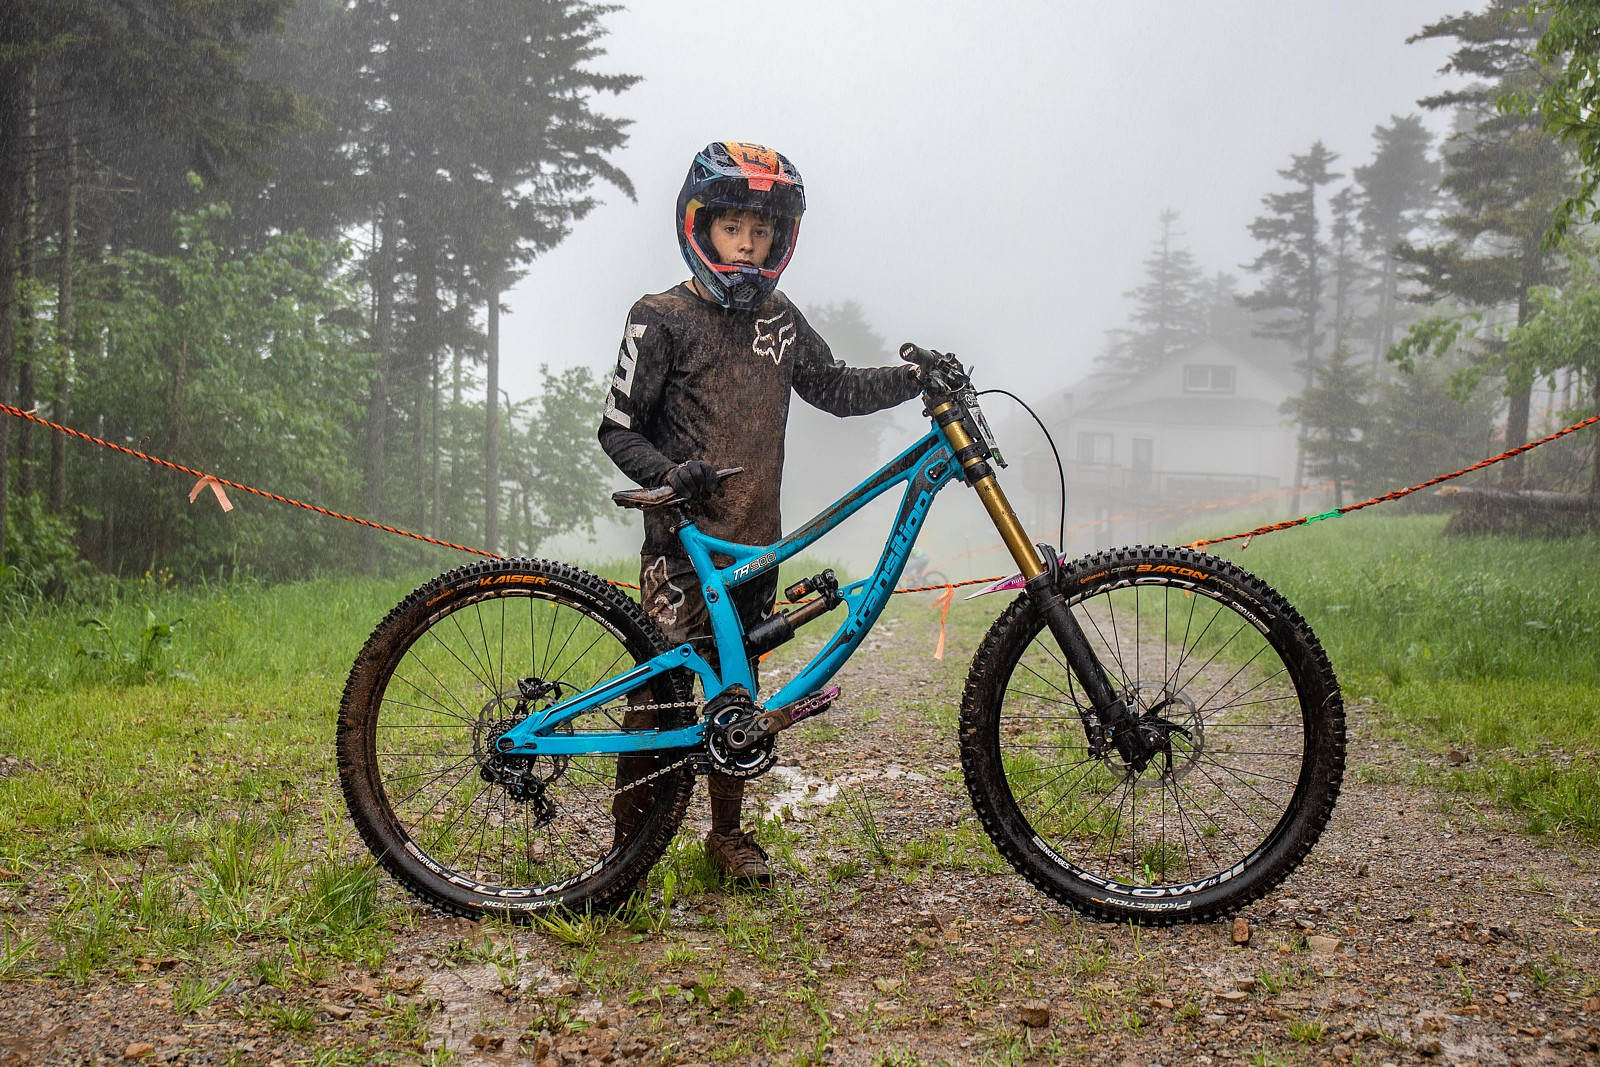 GROM Bikes of DHSE #2 Snowshoe - Brody St.Clair. - JackRice - Mountain Biking Pictures - Vital MTB